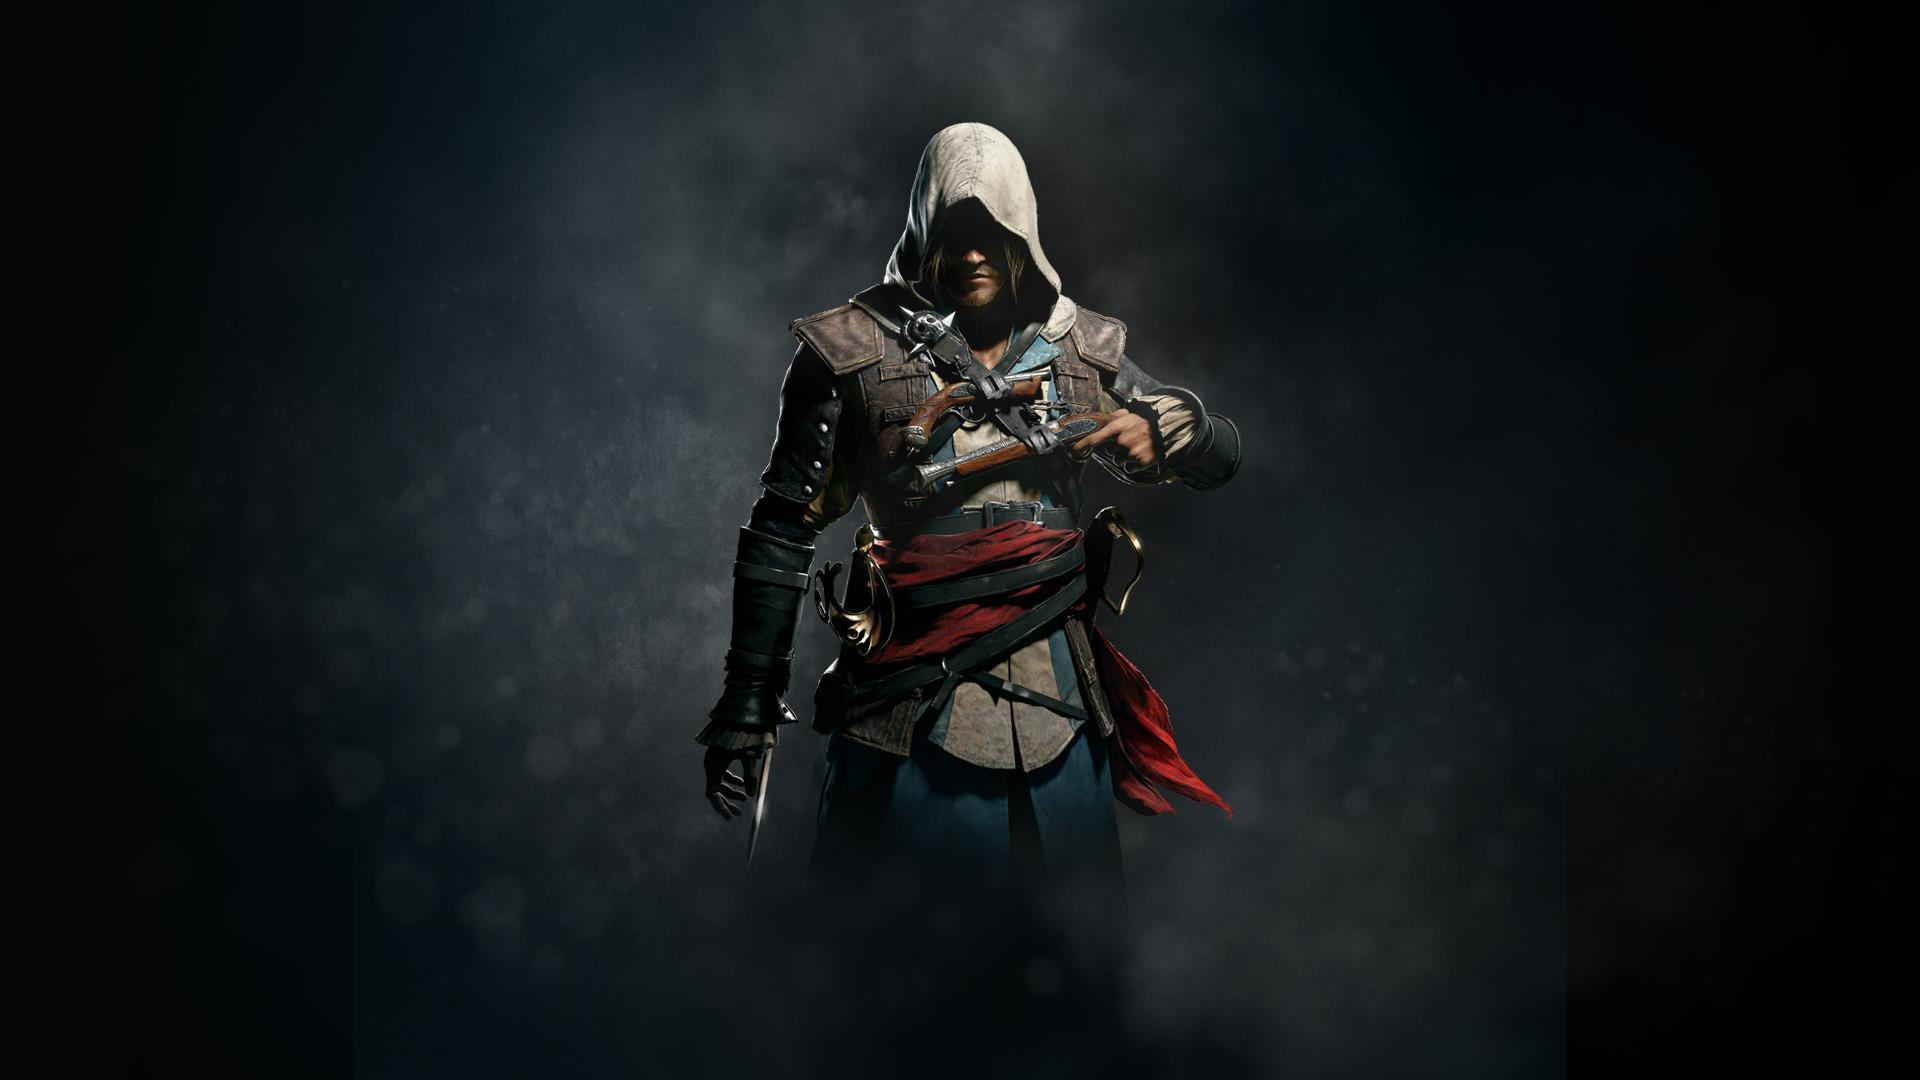 Help A Brother Out in Assassin's Creed IV: Black Flag